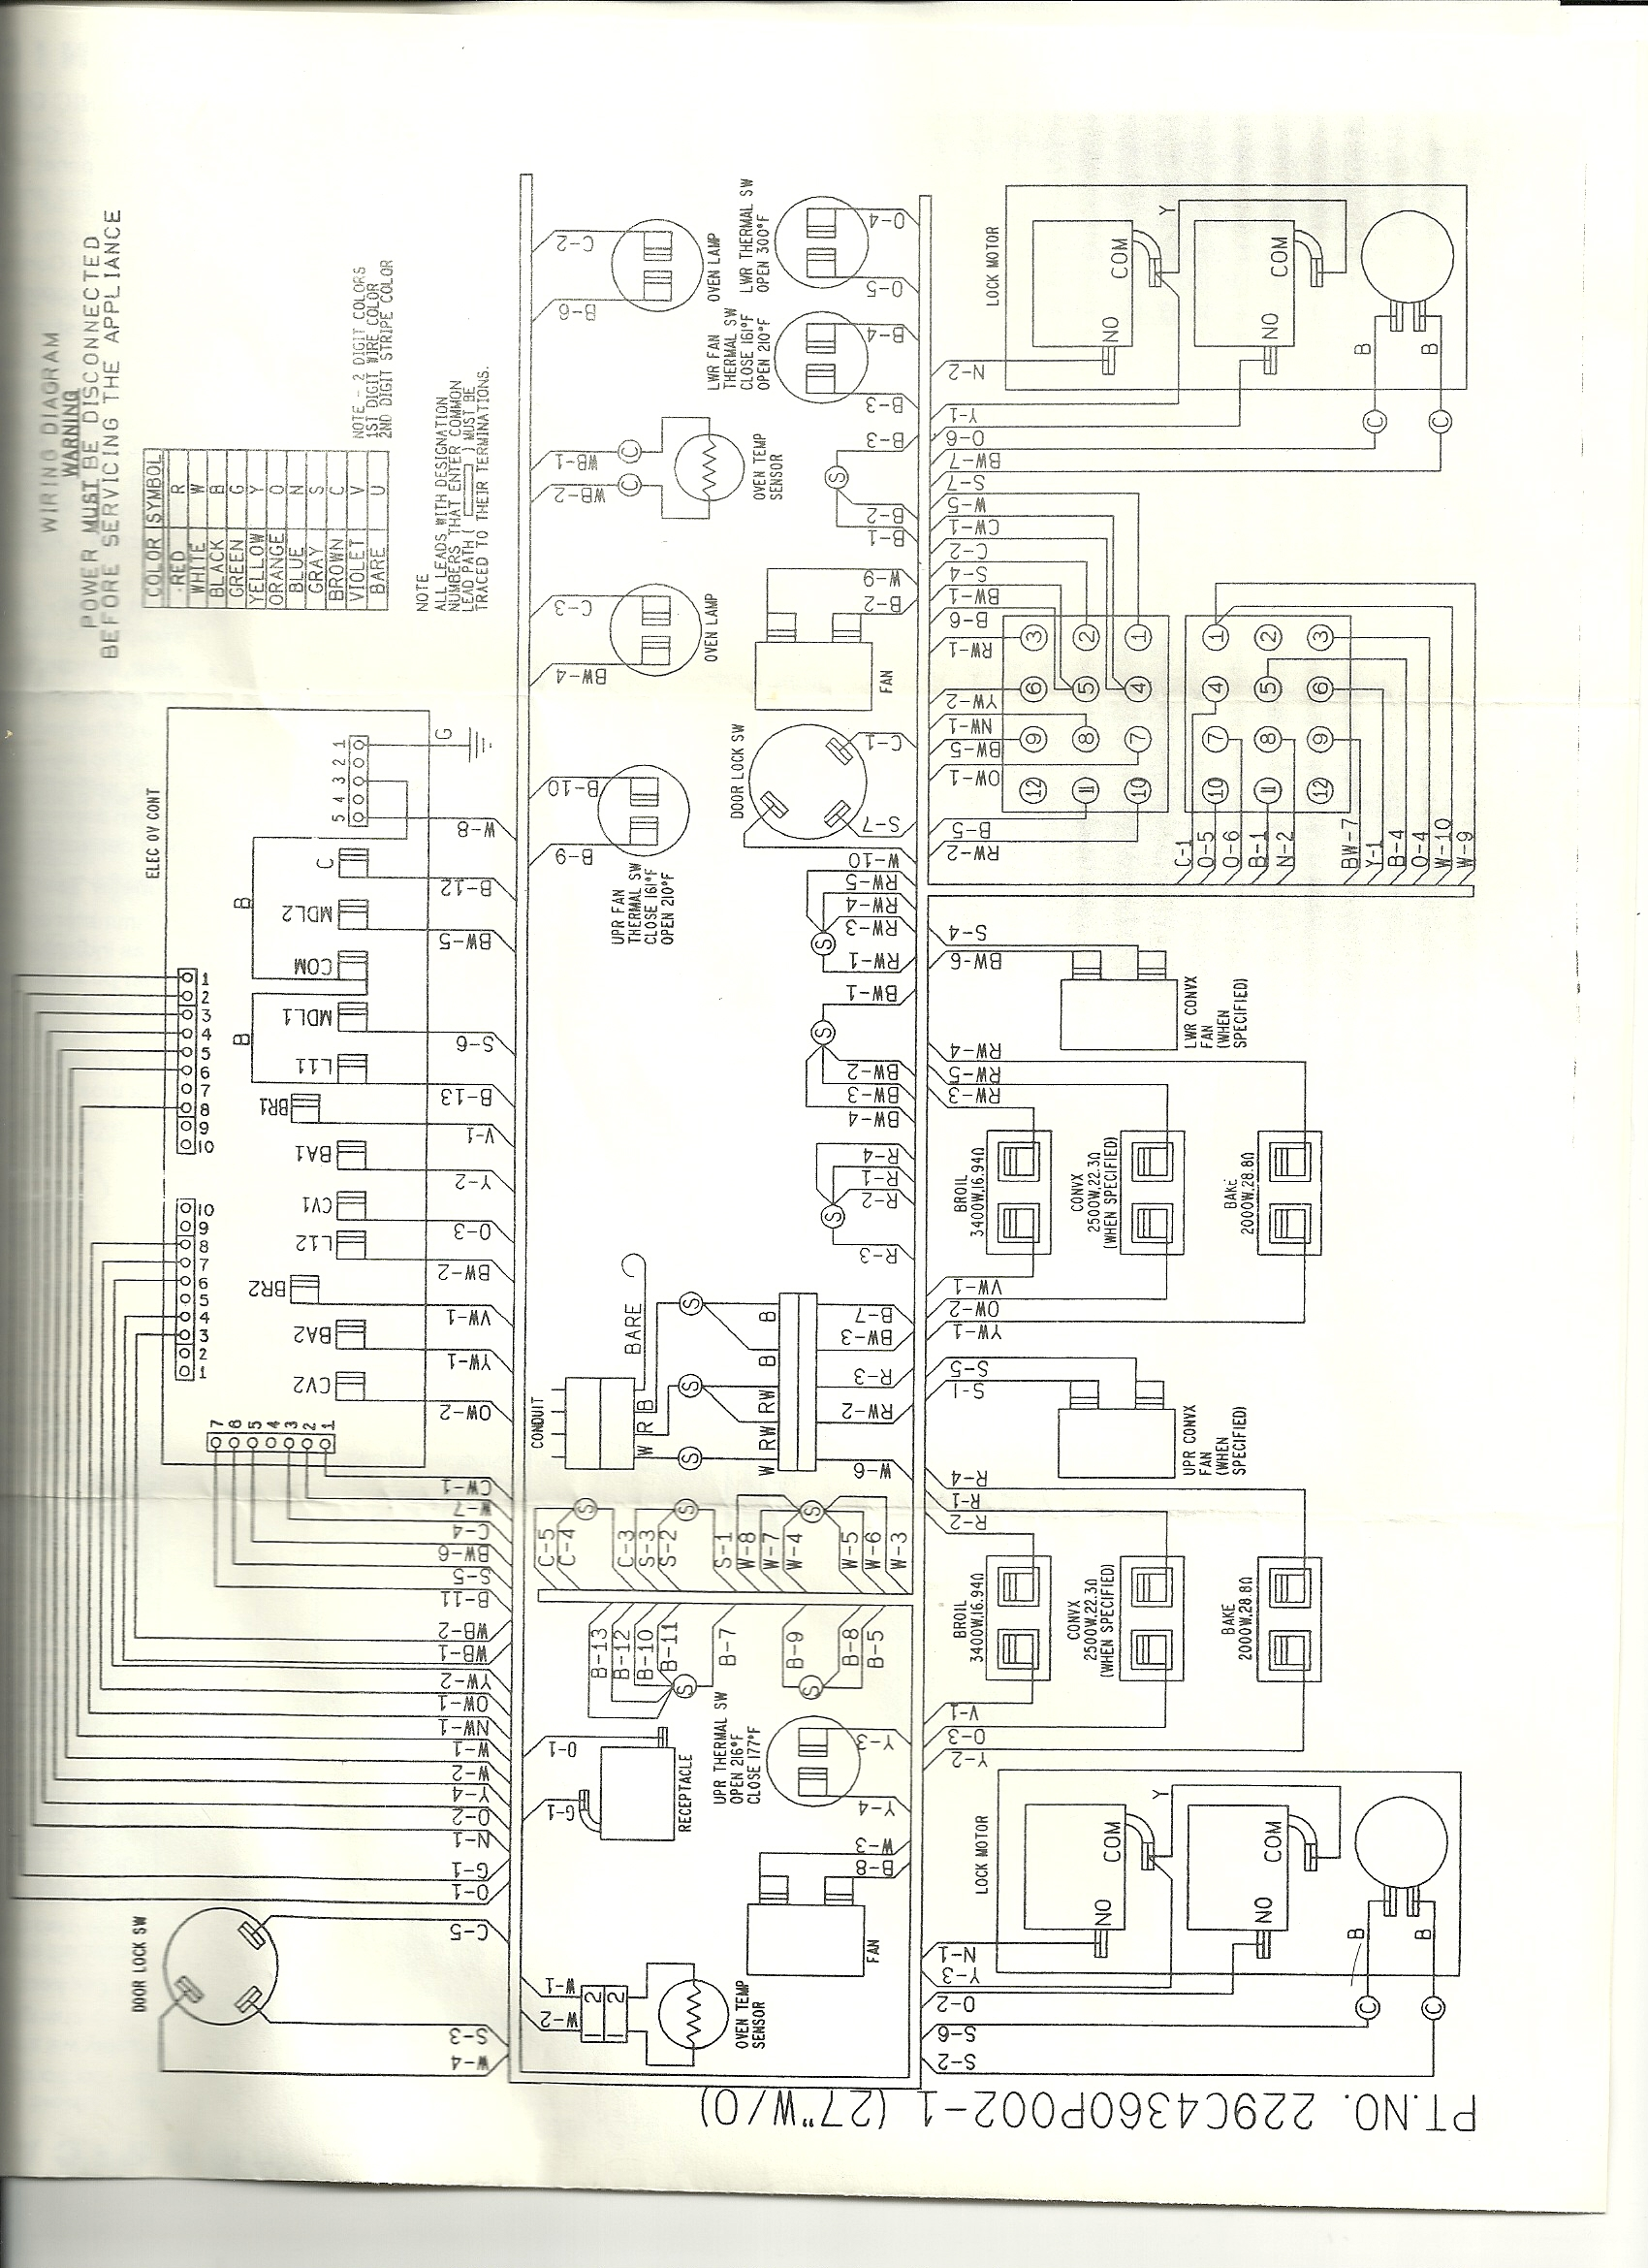 2012 09 13_005224_circuitdiagram_ge_range0001 ge monogram oven wiring diagram on ge download wirning diagrams kenmore side by side refrigerator wiring diagram at nearapp.co